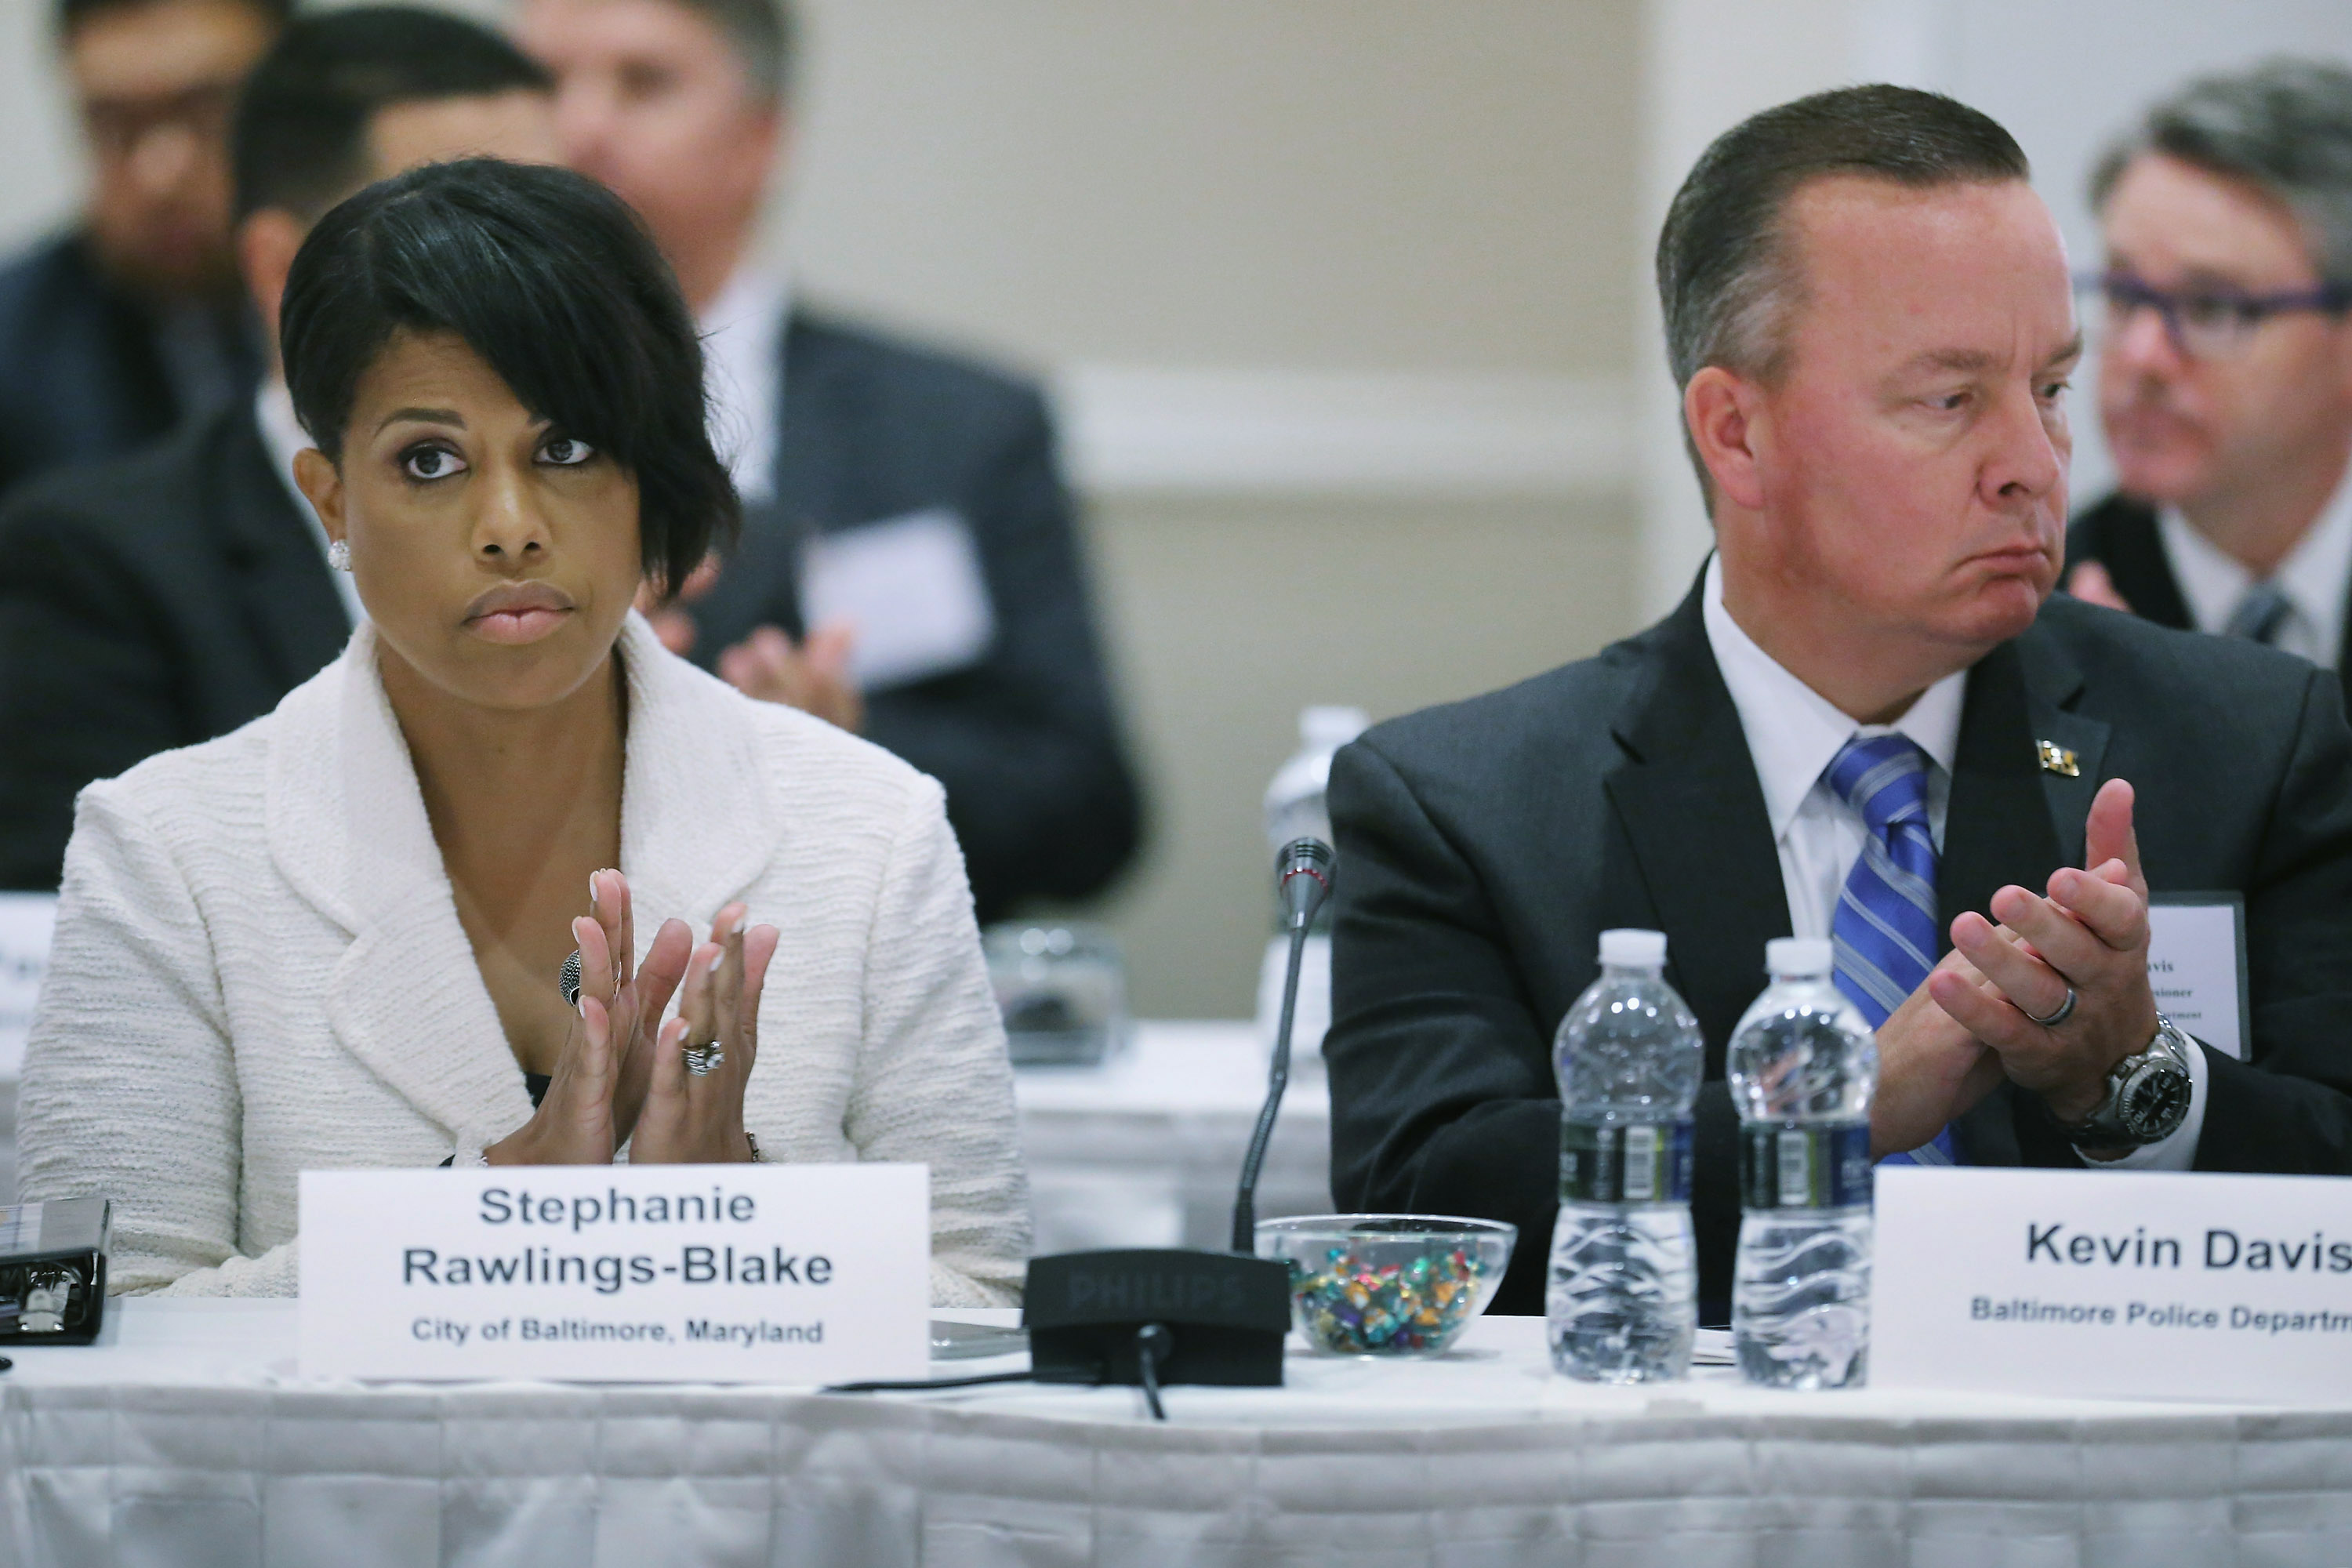 Baltimore Mayor Stephanie Rawlings-Blake and Baltimore Interim Police Commissioner Kevin Davis, left to right, attend a summit on violent crime reduction in Washington, D.C.  in October.